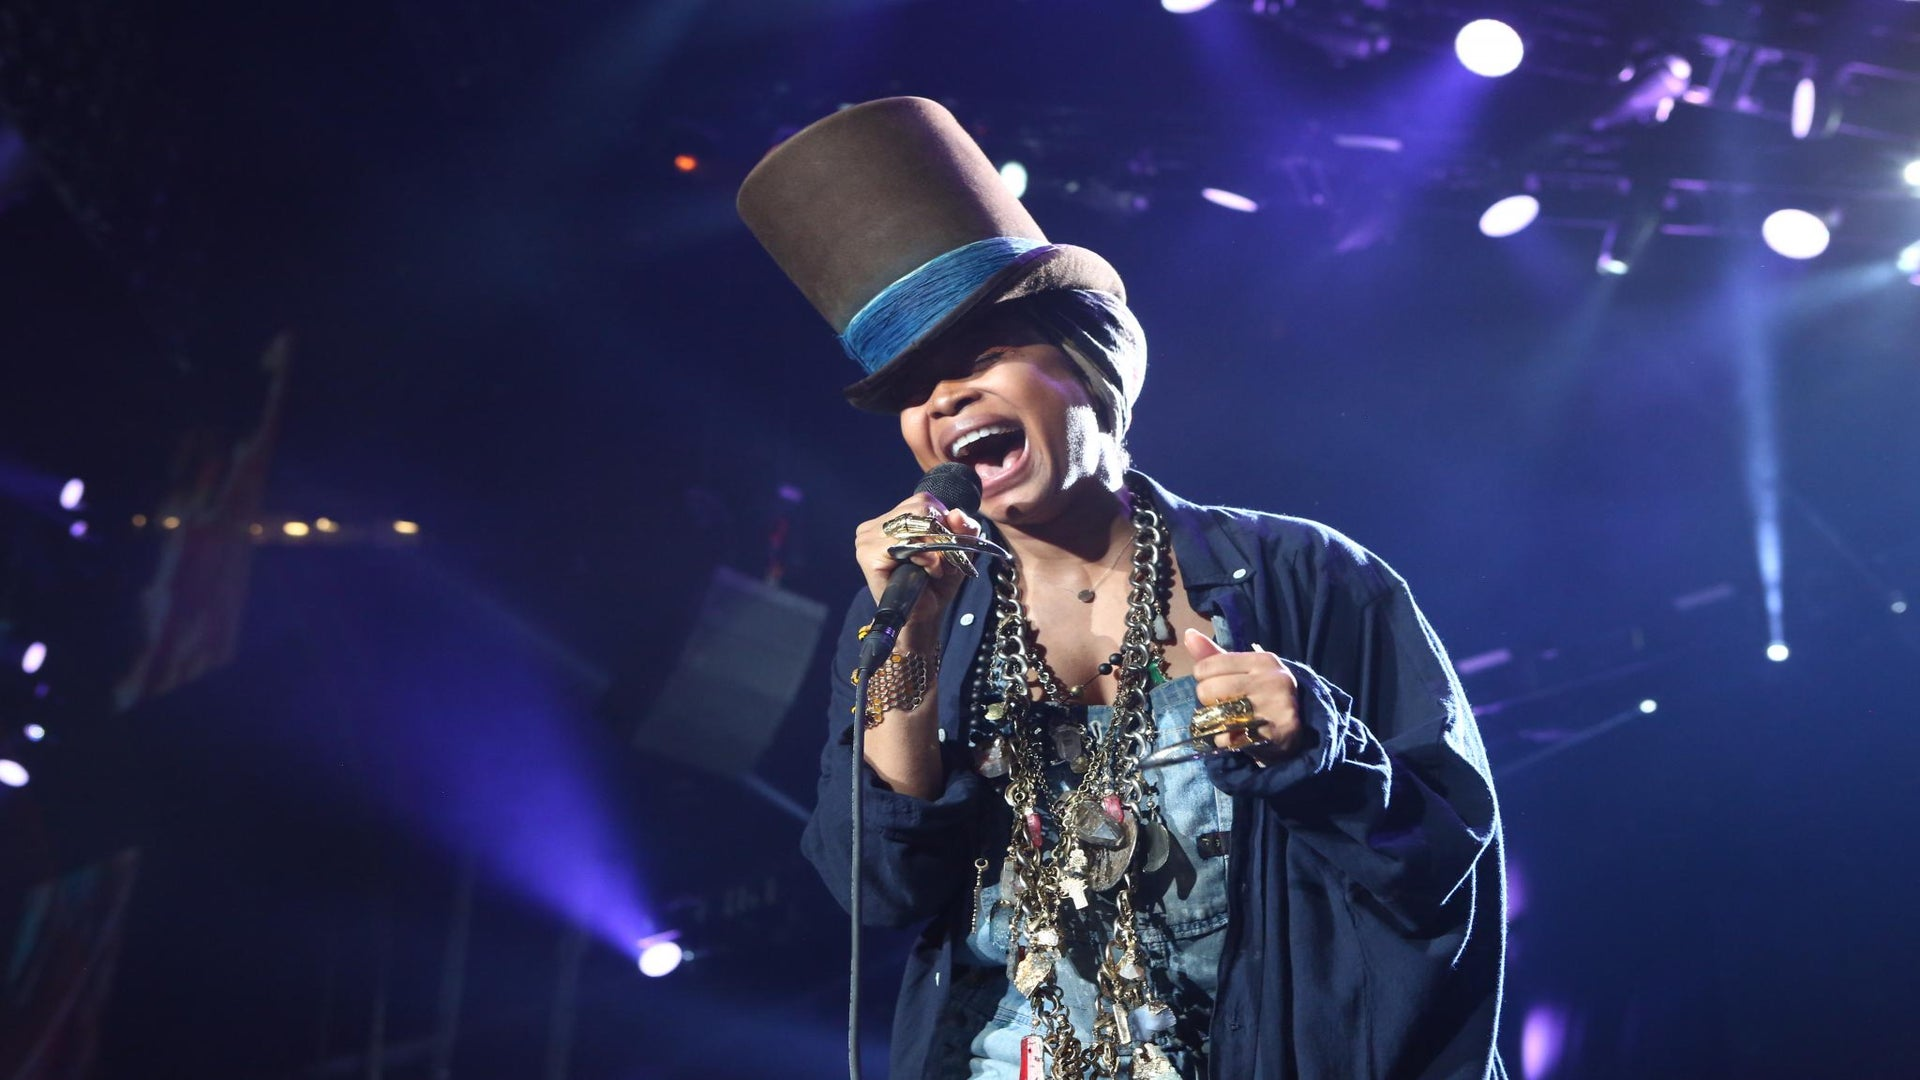 Erykah Badu to Drop 'But You Caint Use My Phone' Mixtape Next Week